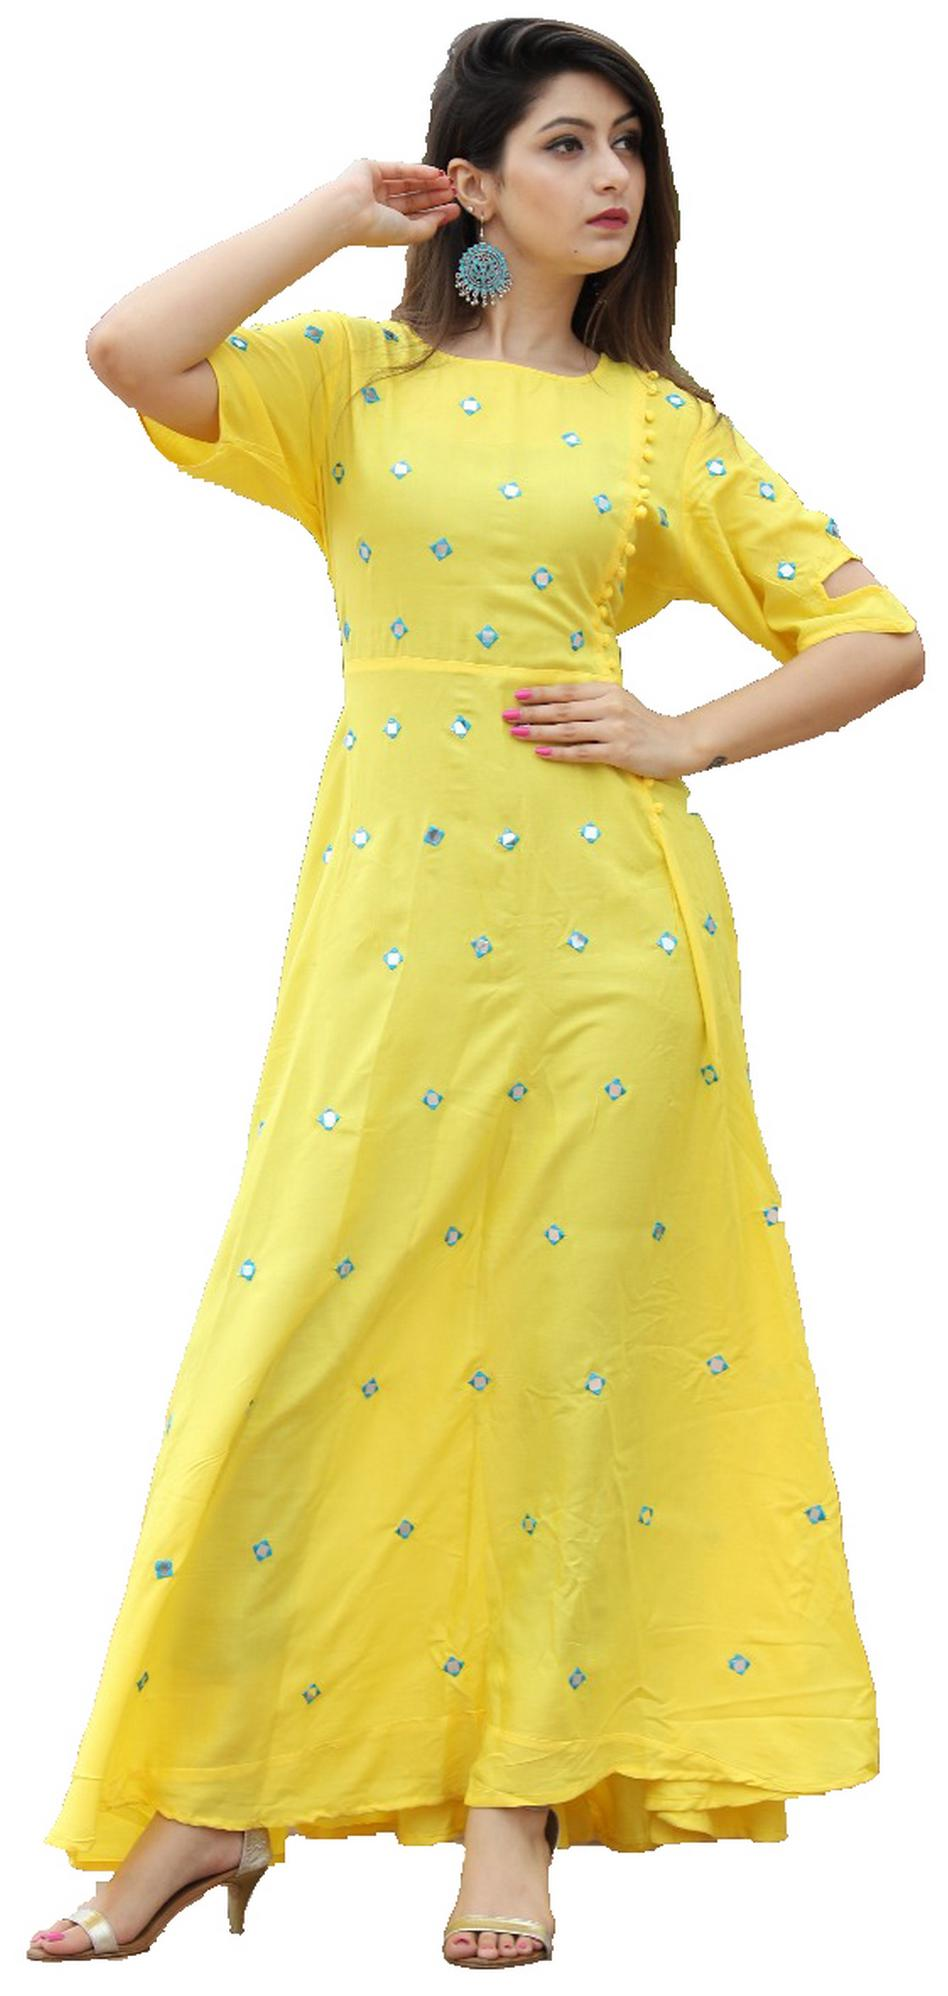 6th Avenue Yellow 3/4 Sleeve Rayon Kurti with Mirror Work - Medium(38)